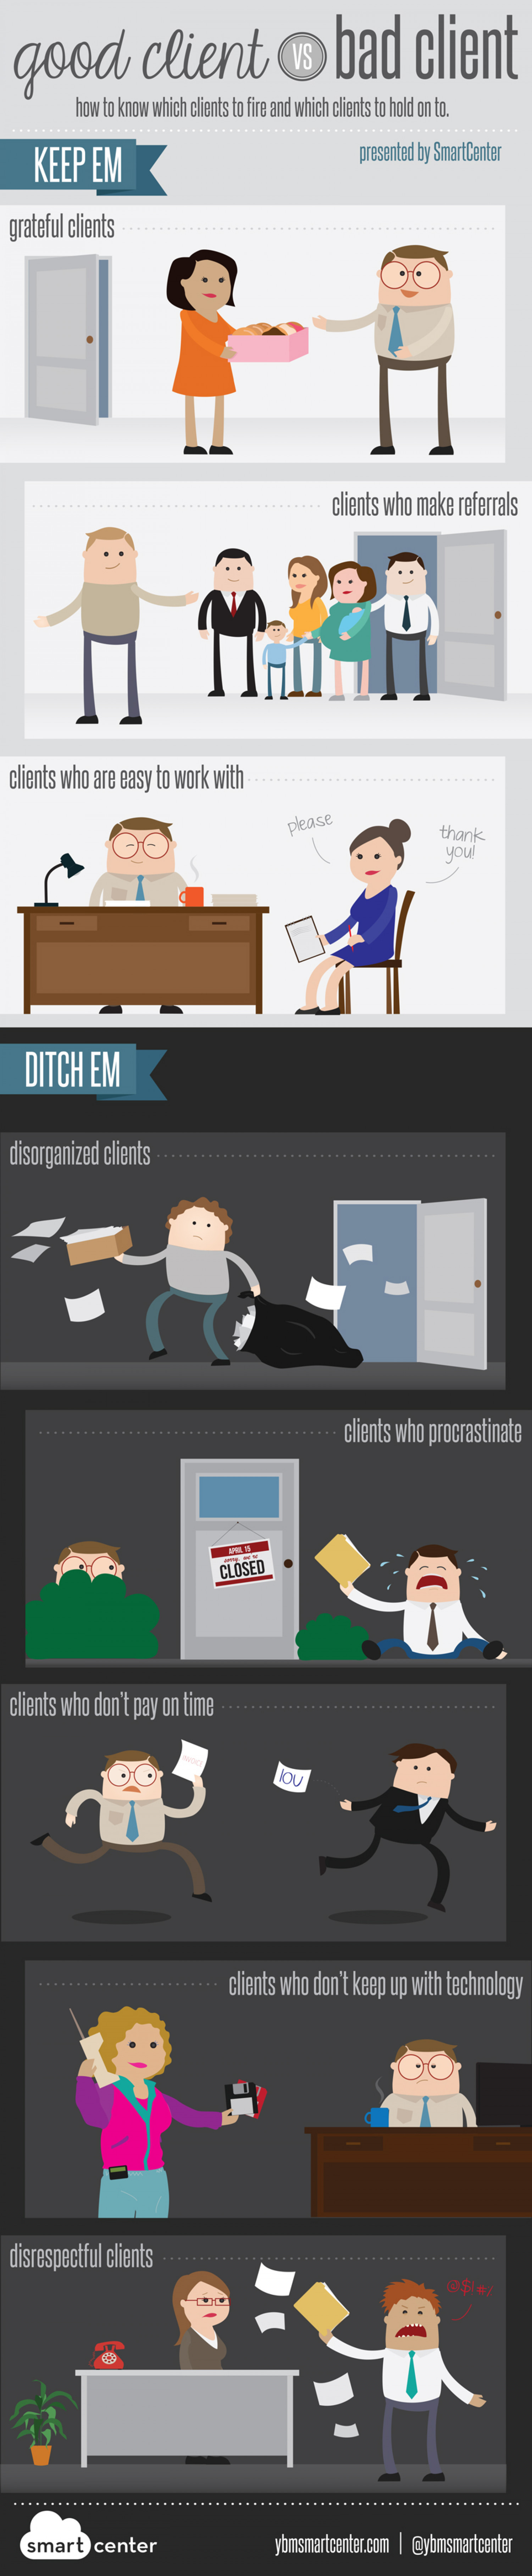 Good Client vs. Bad Client Infographic